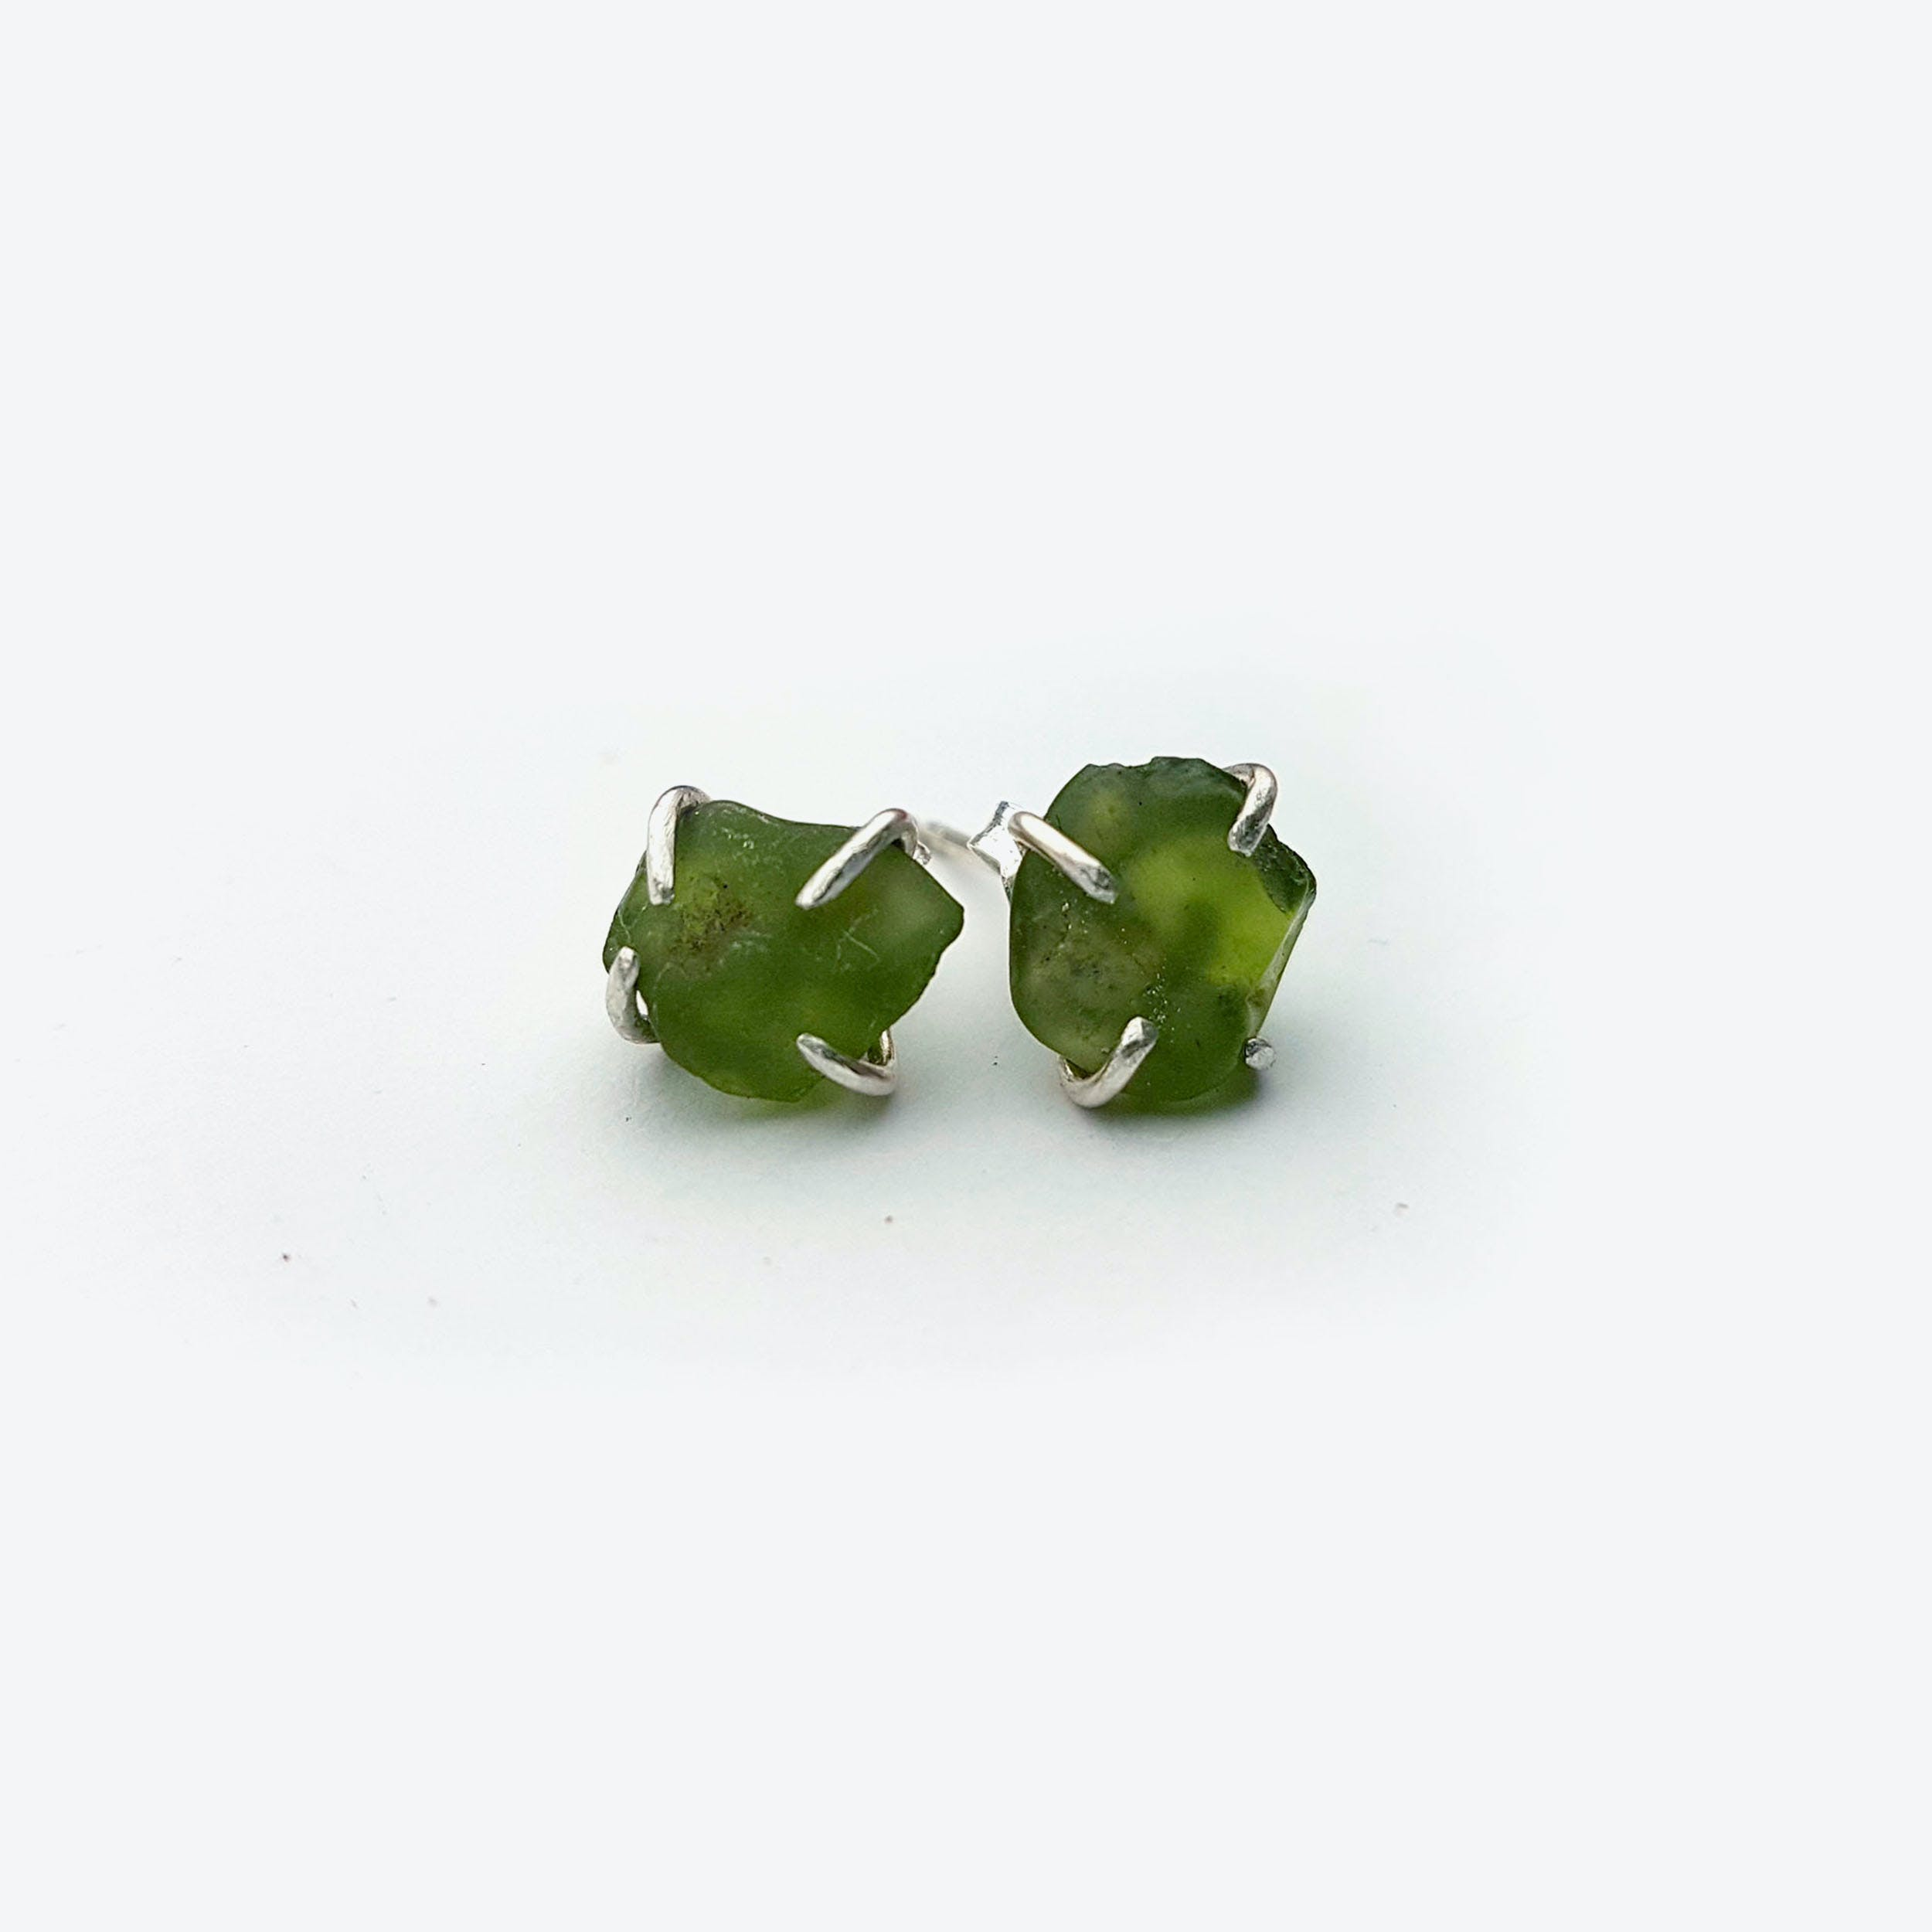 Rock Earrings - Peridot